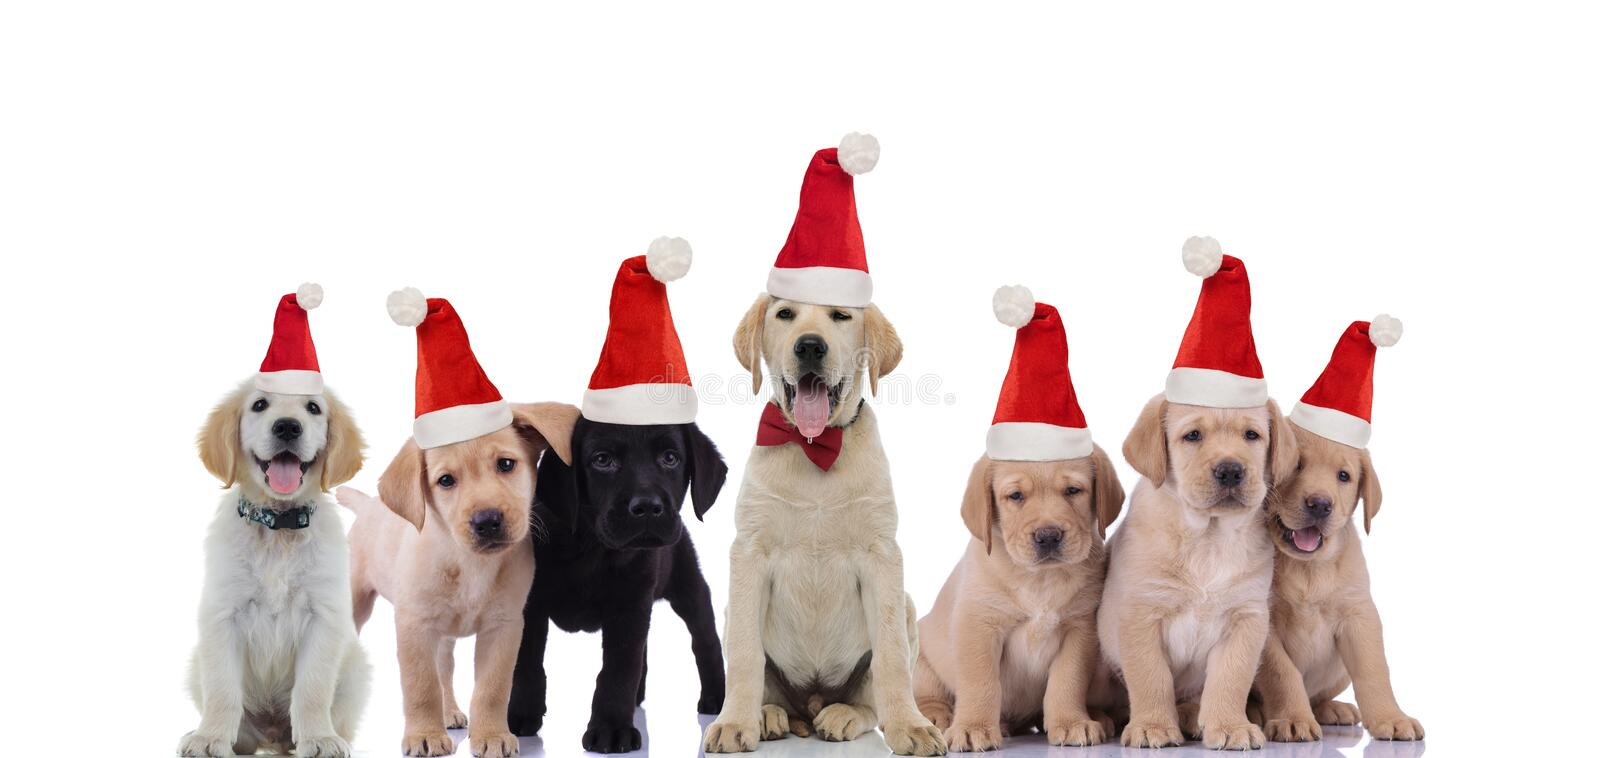 Big brother labrador retriever celebrating christams with its smaller brothers. On white background stock photo